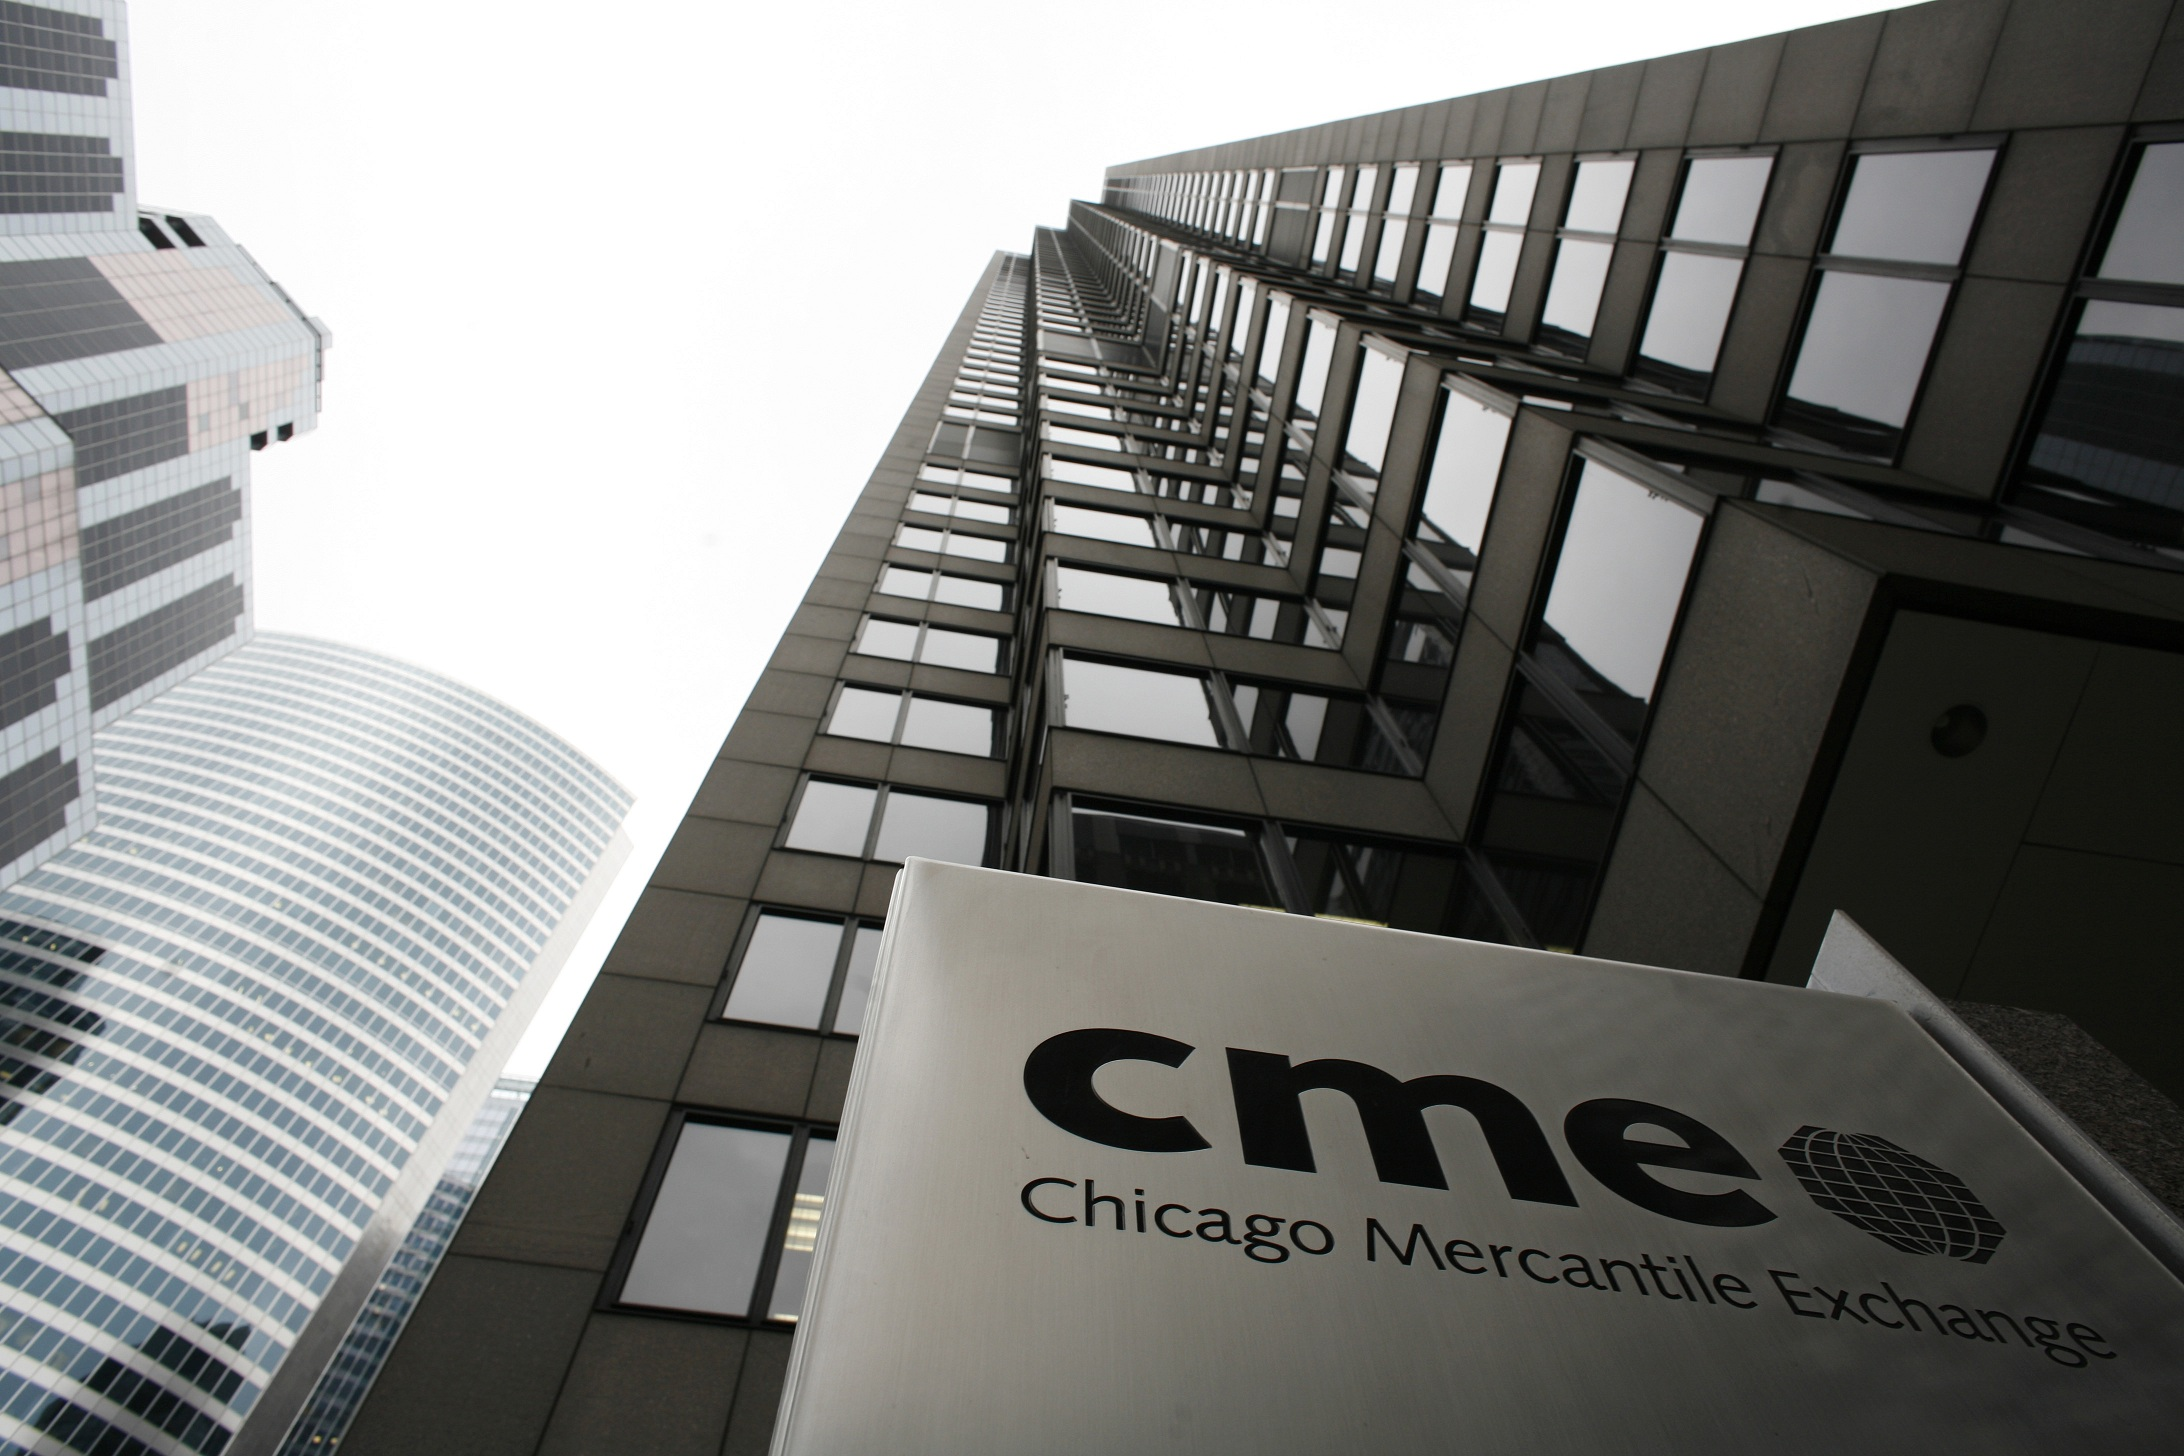 The Chicago Mercantile Exchange is pictured March 17, 2008. CME Group Inc, the world's largest derivatives exchange, on Monday forged a definitive agreement to buy energy and precious metals mart NYMEX for about $9.4 billion. REUTERS/John Gress (UNITED STATES) - RTR1YFKW